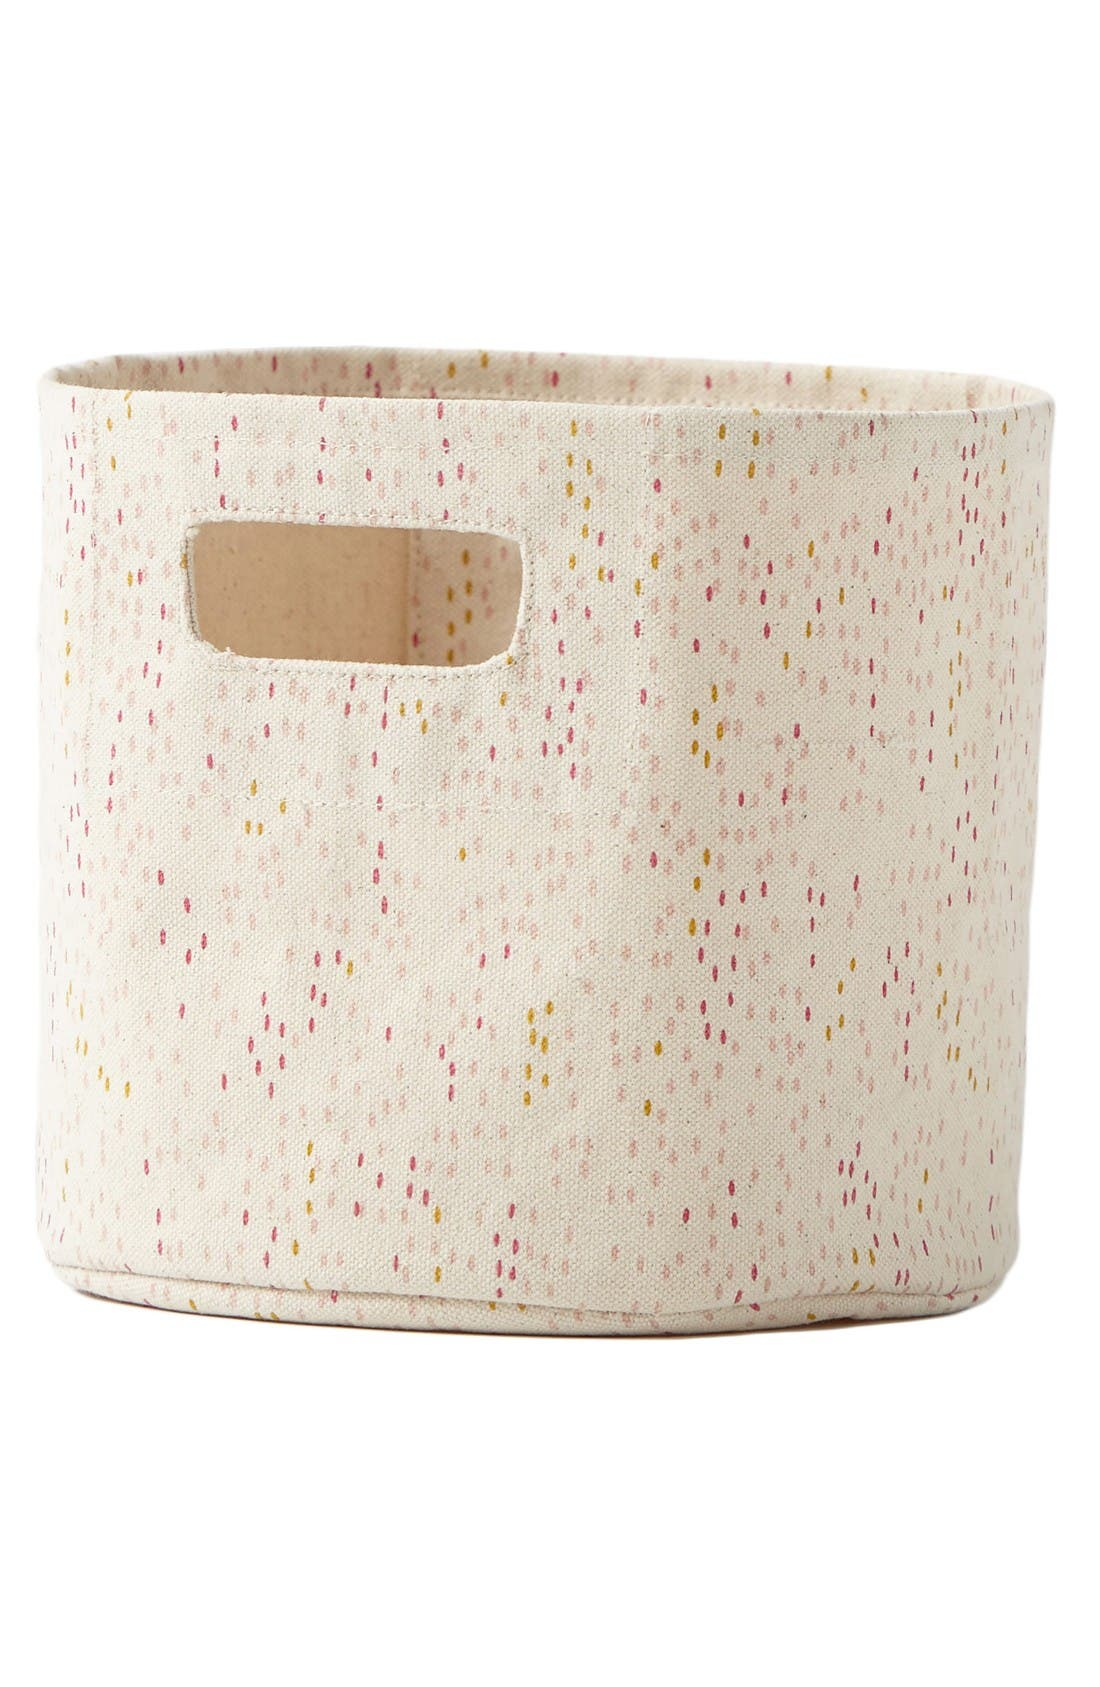 Showers Mini Canvas Bin,                             Main thumbnail 1, color,                             Pink